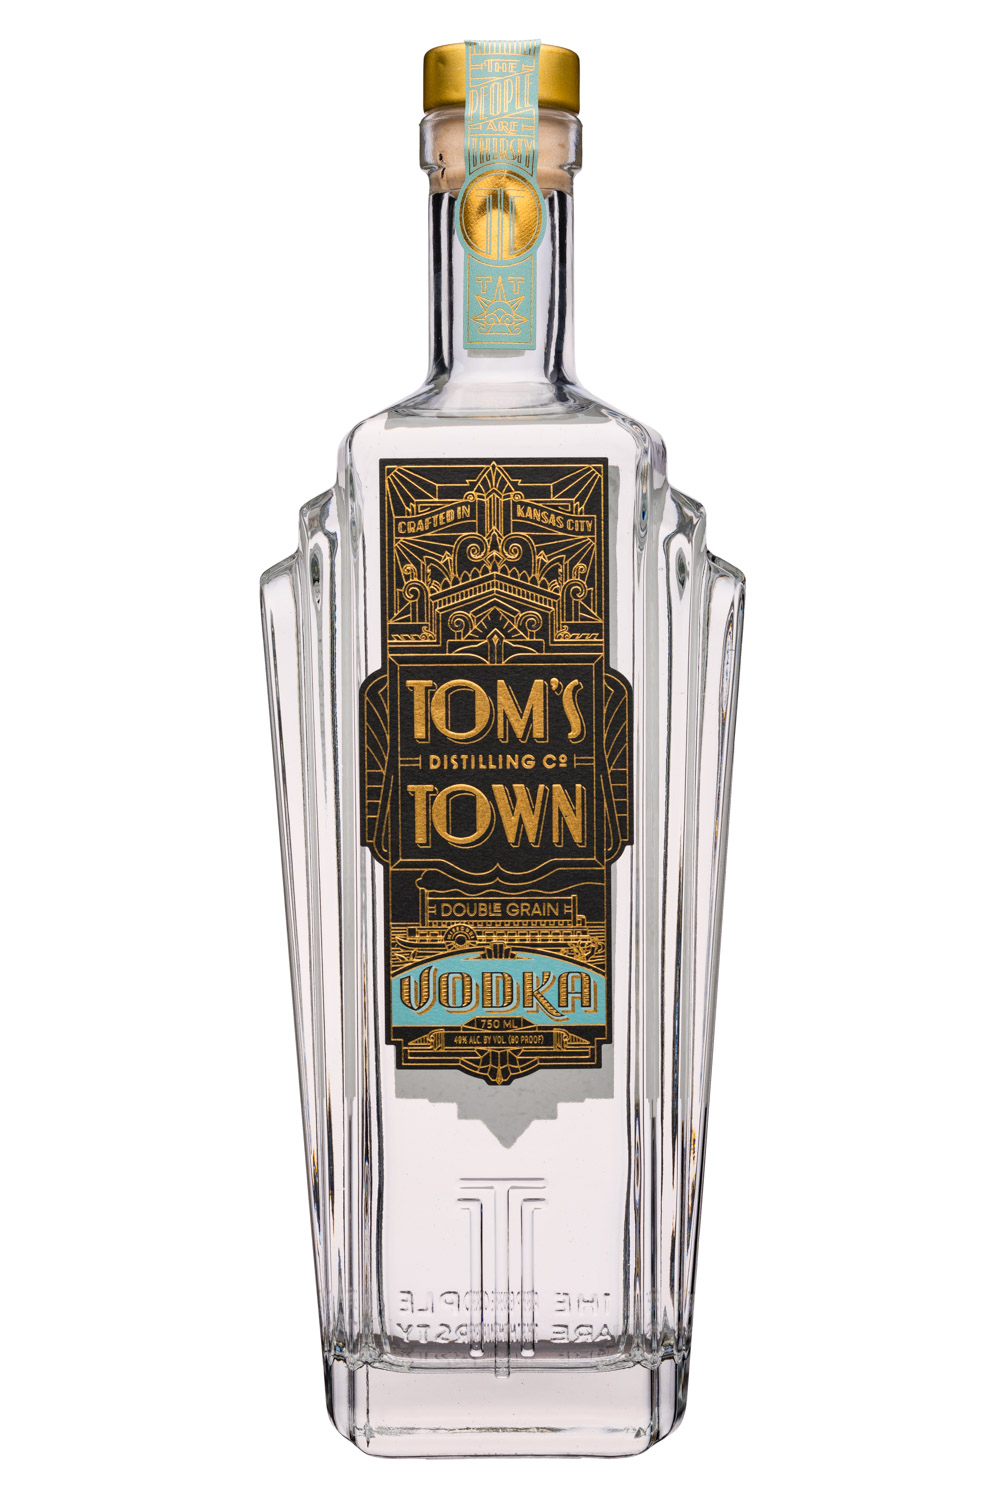 Double Grain VODKA